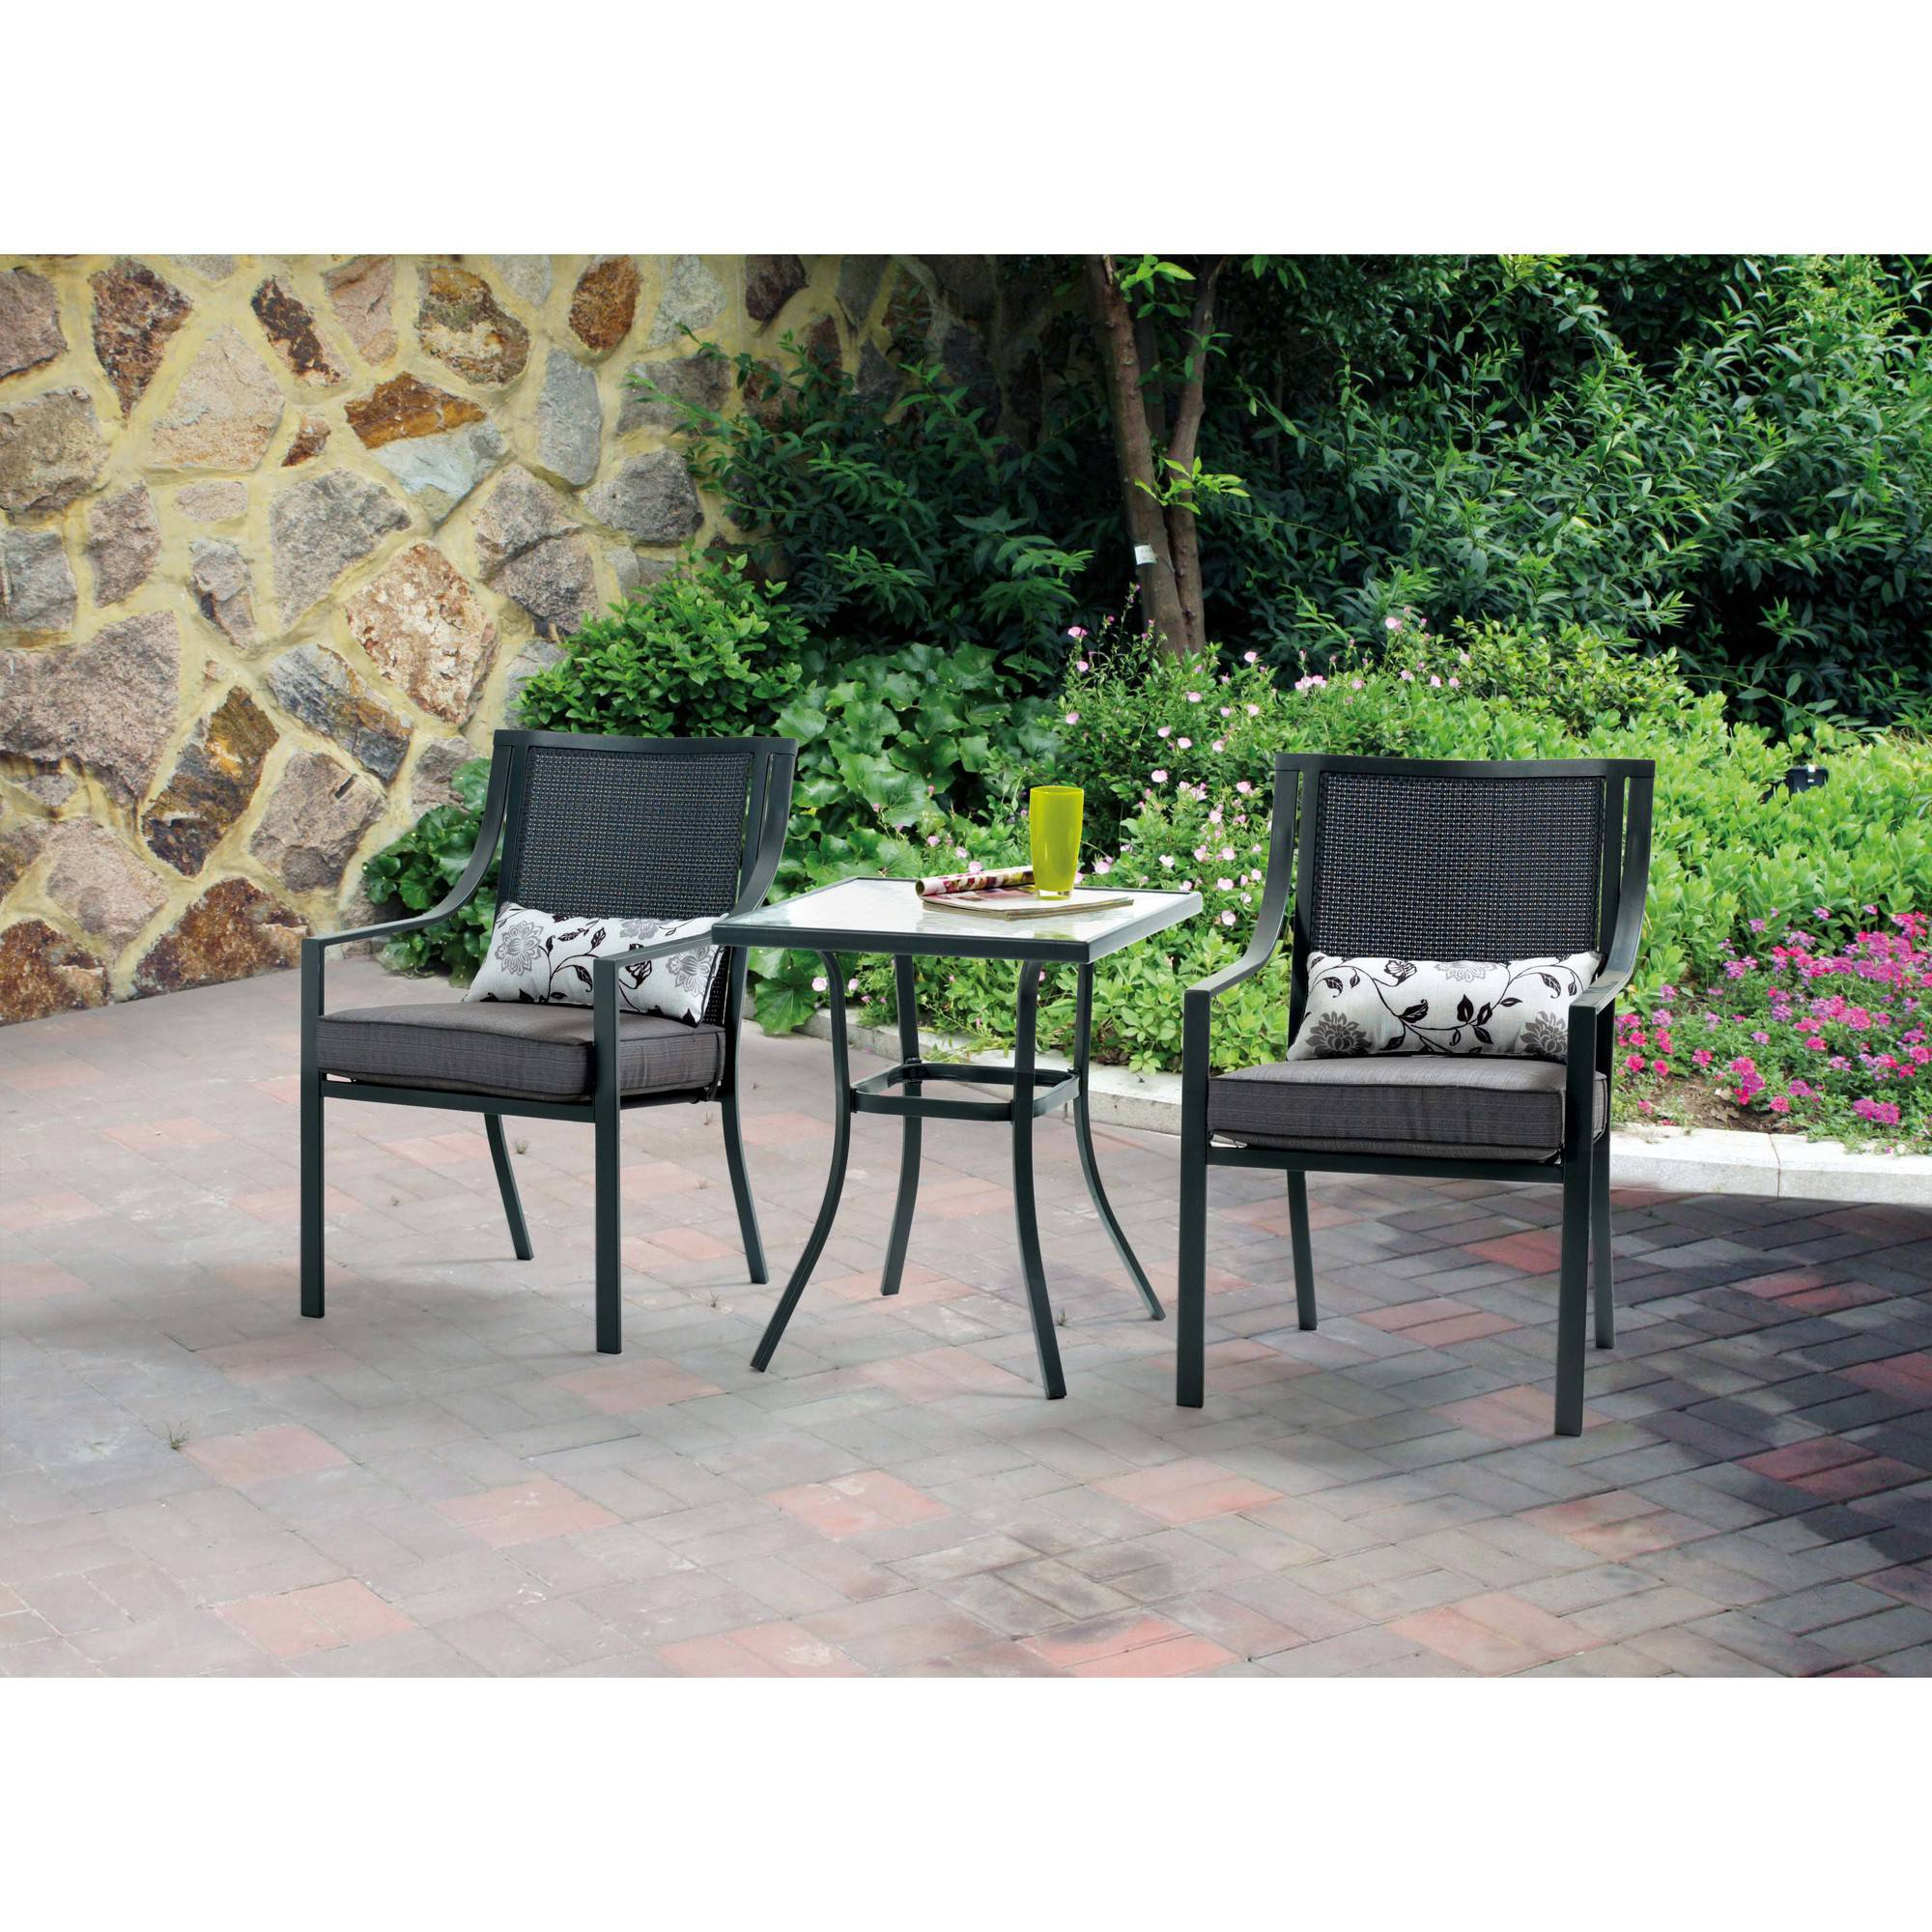 Better Homes And Gardens Rose 3 Piece Outdoor Bistro Set Walmart Com